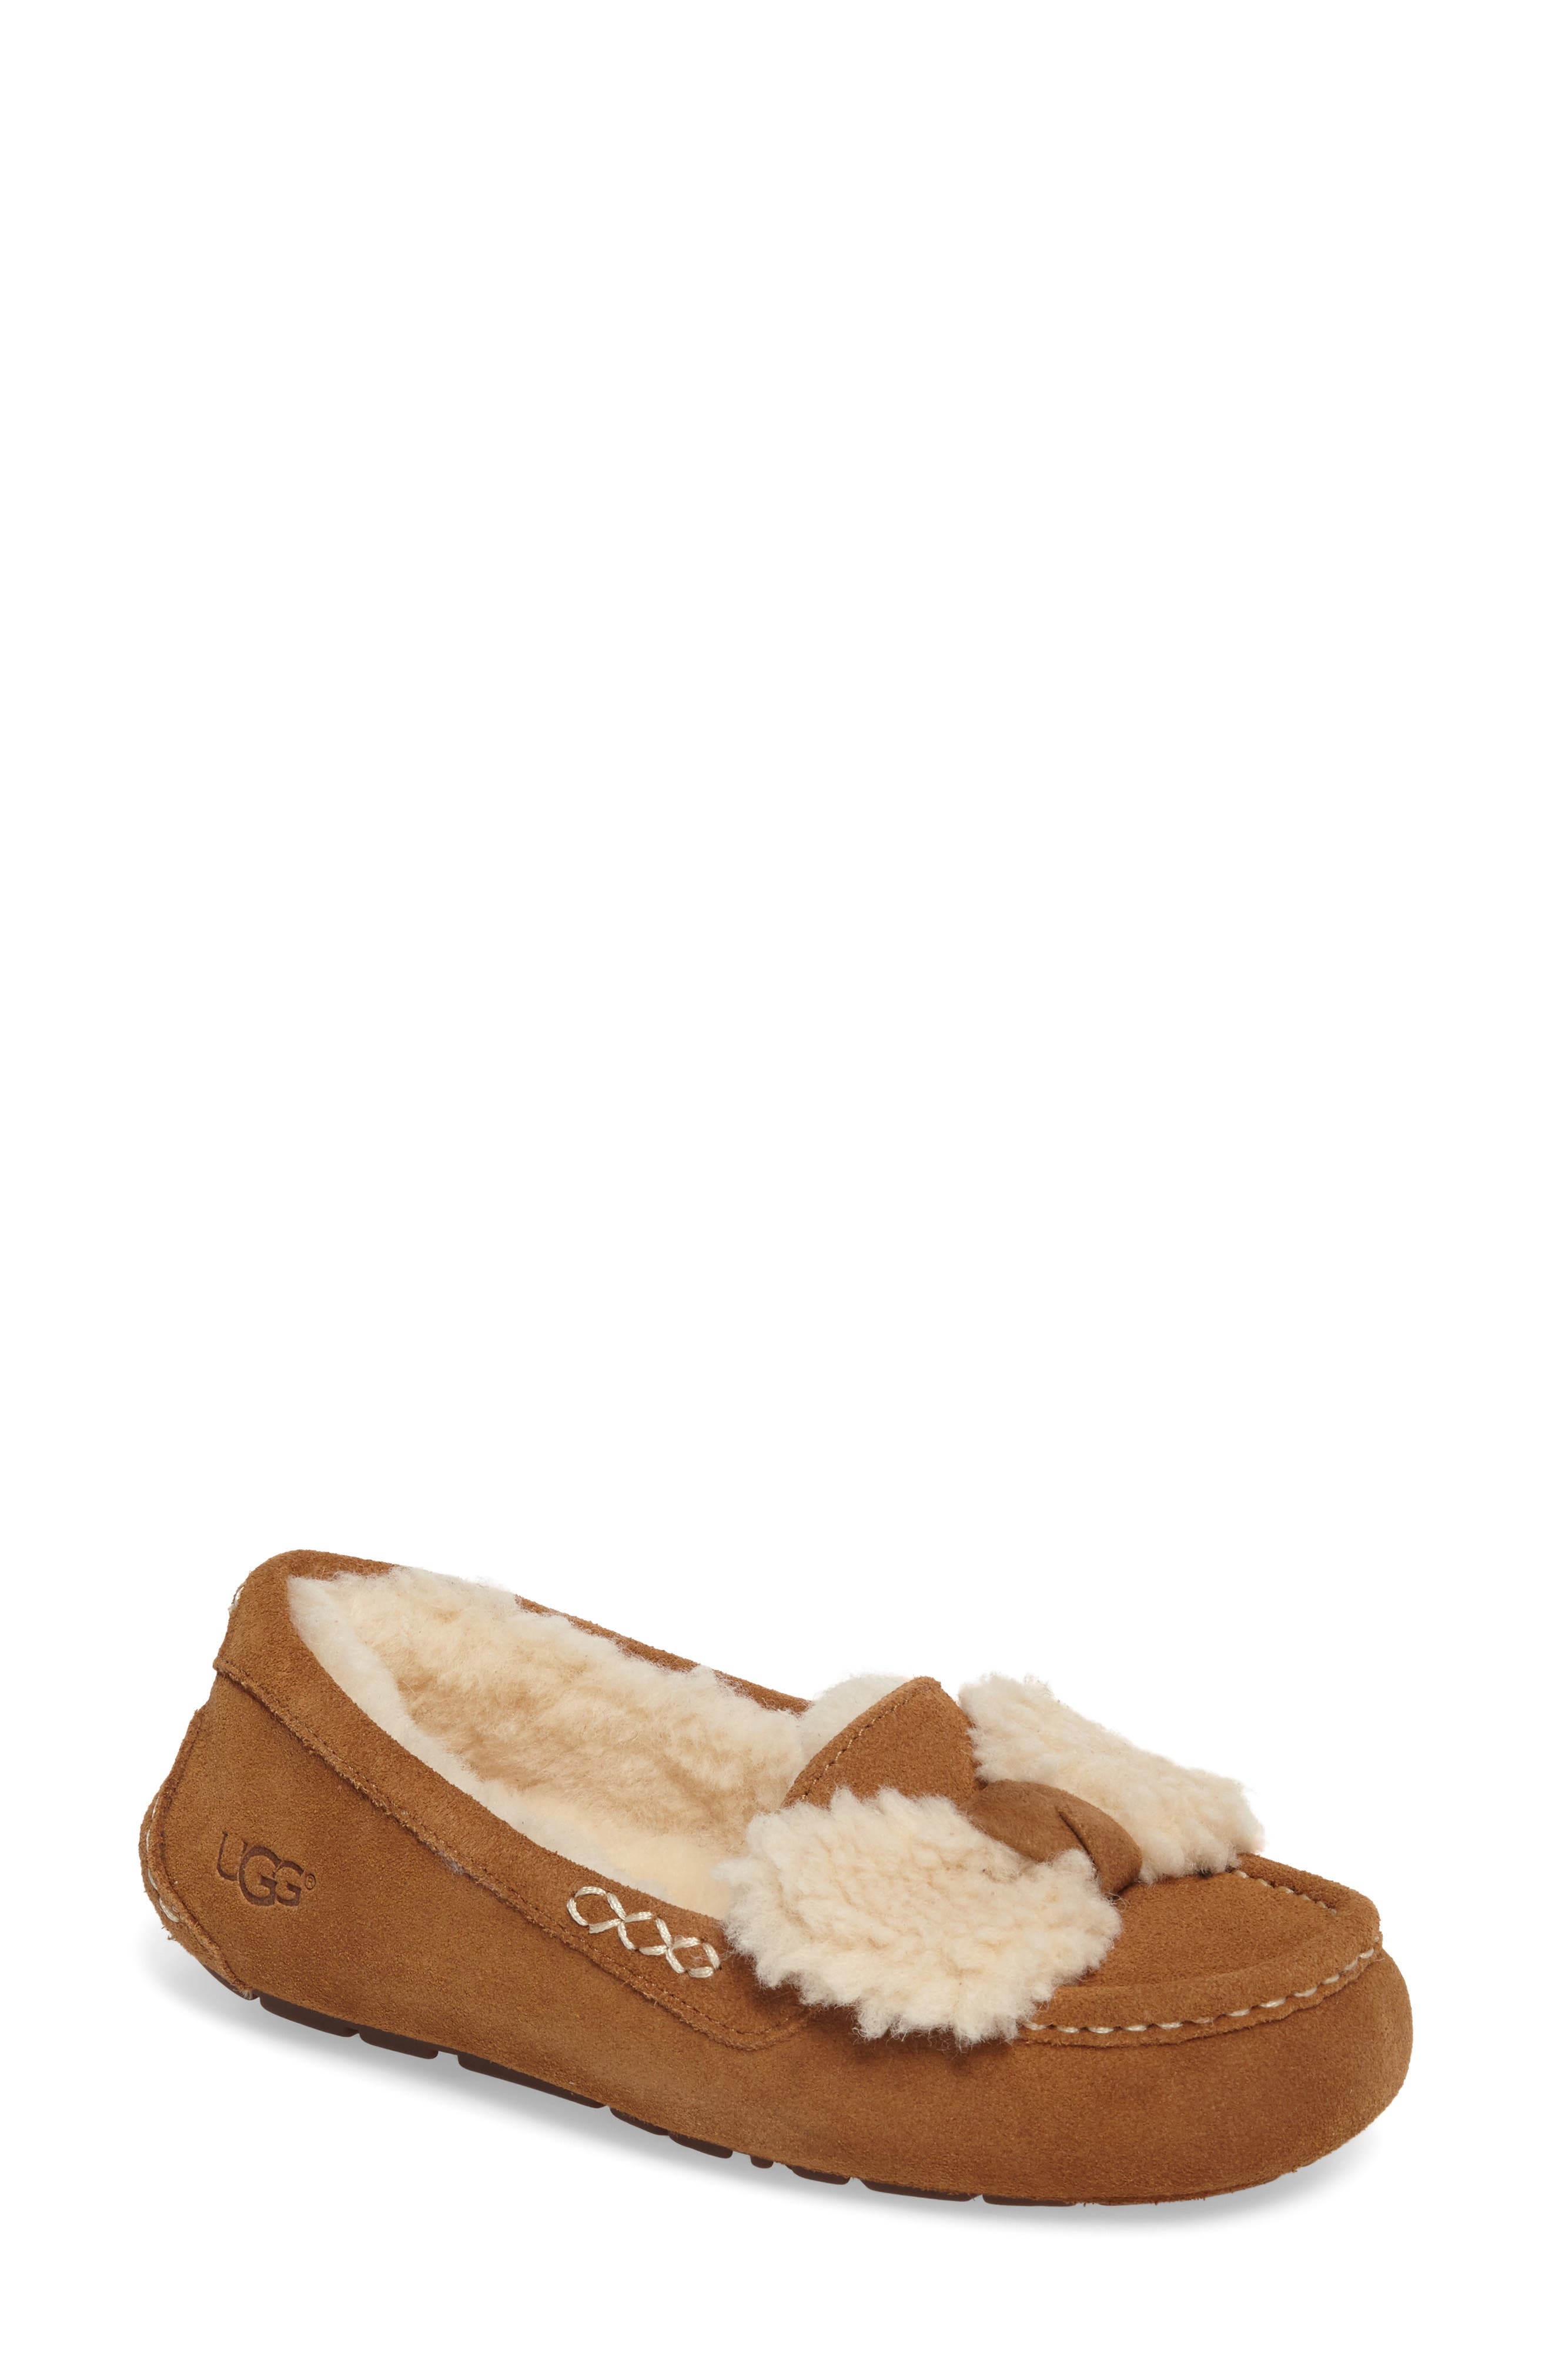 Ansley Bow Slipper,                         Main,                         color, Chestnut Suede